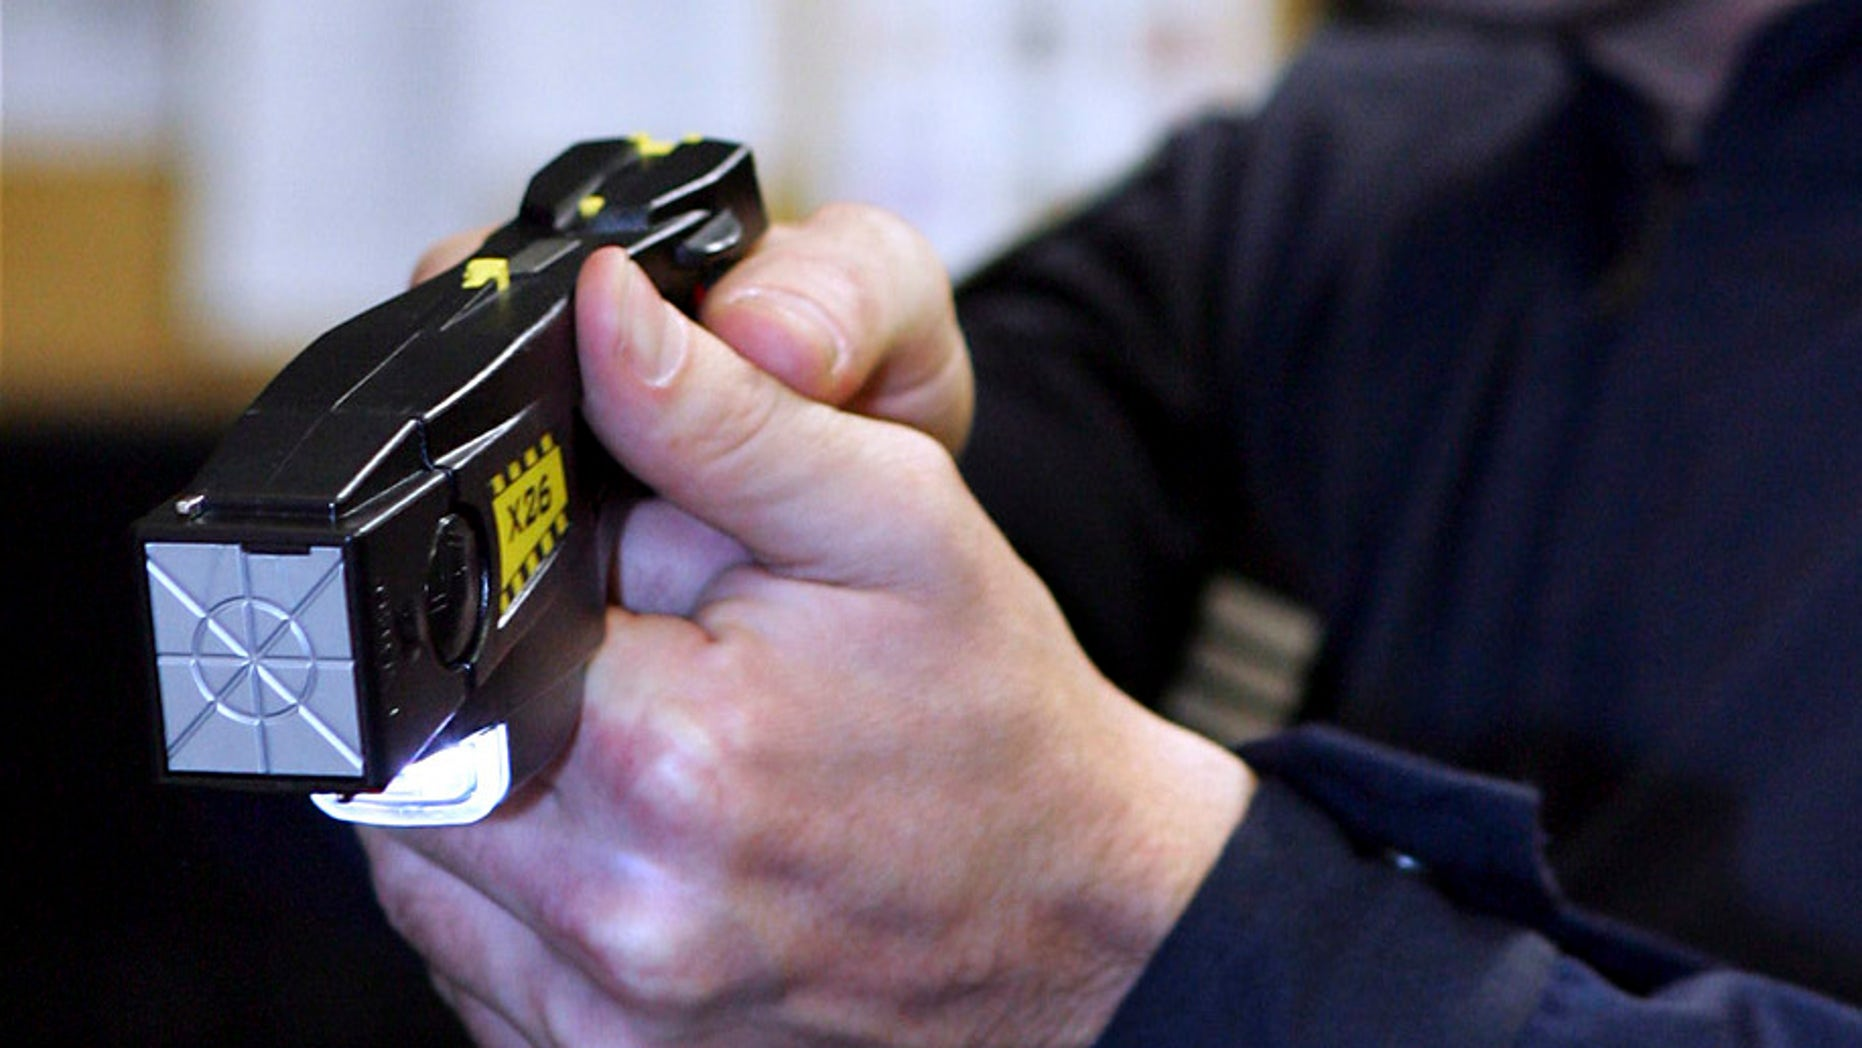 An unidentified  French Police officer presents a stun gun which is to be used experimentally by the anti-criminal brigades, in Paris, Tuesday Sept. 20, 2005. (AP Photo/Remy de la Mauviniere)